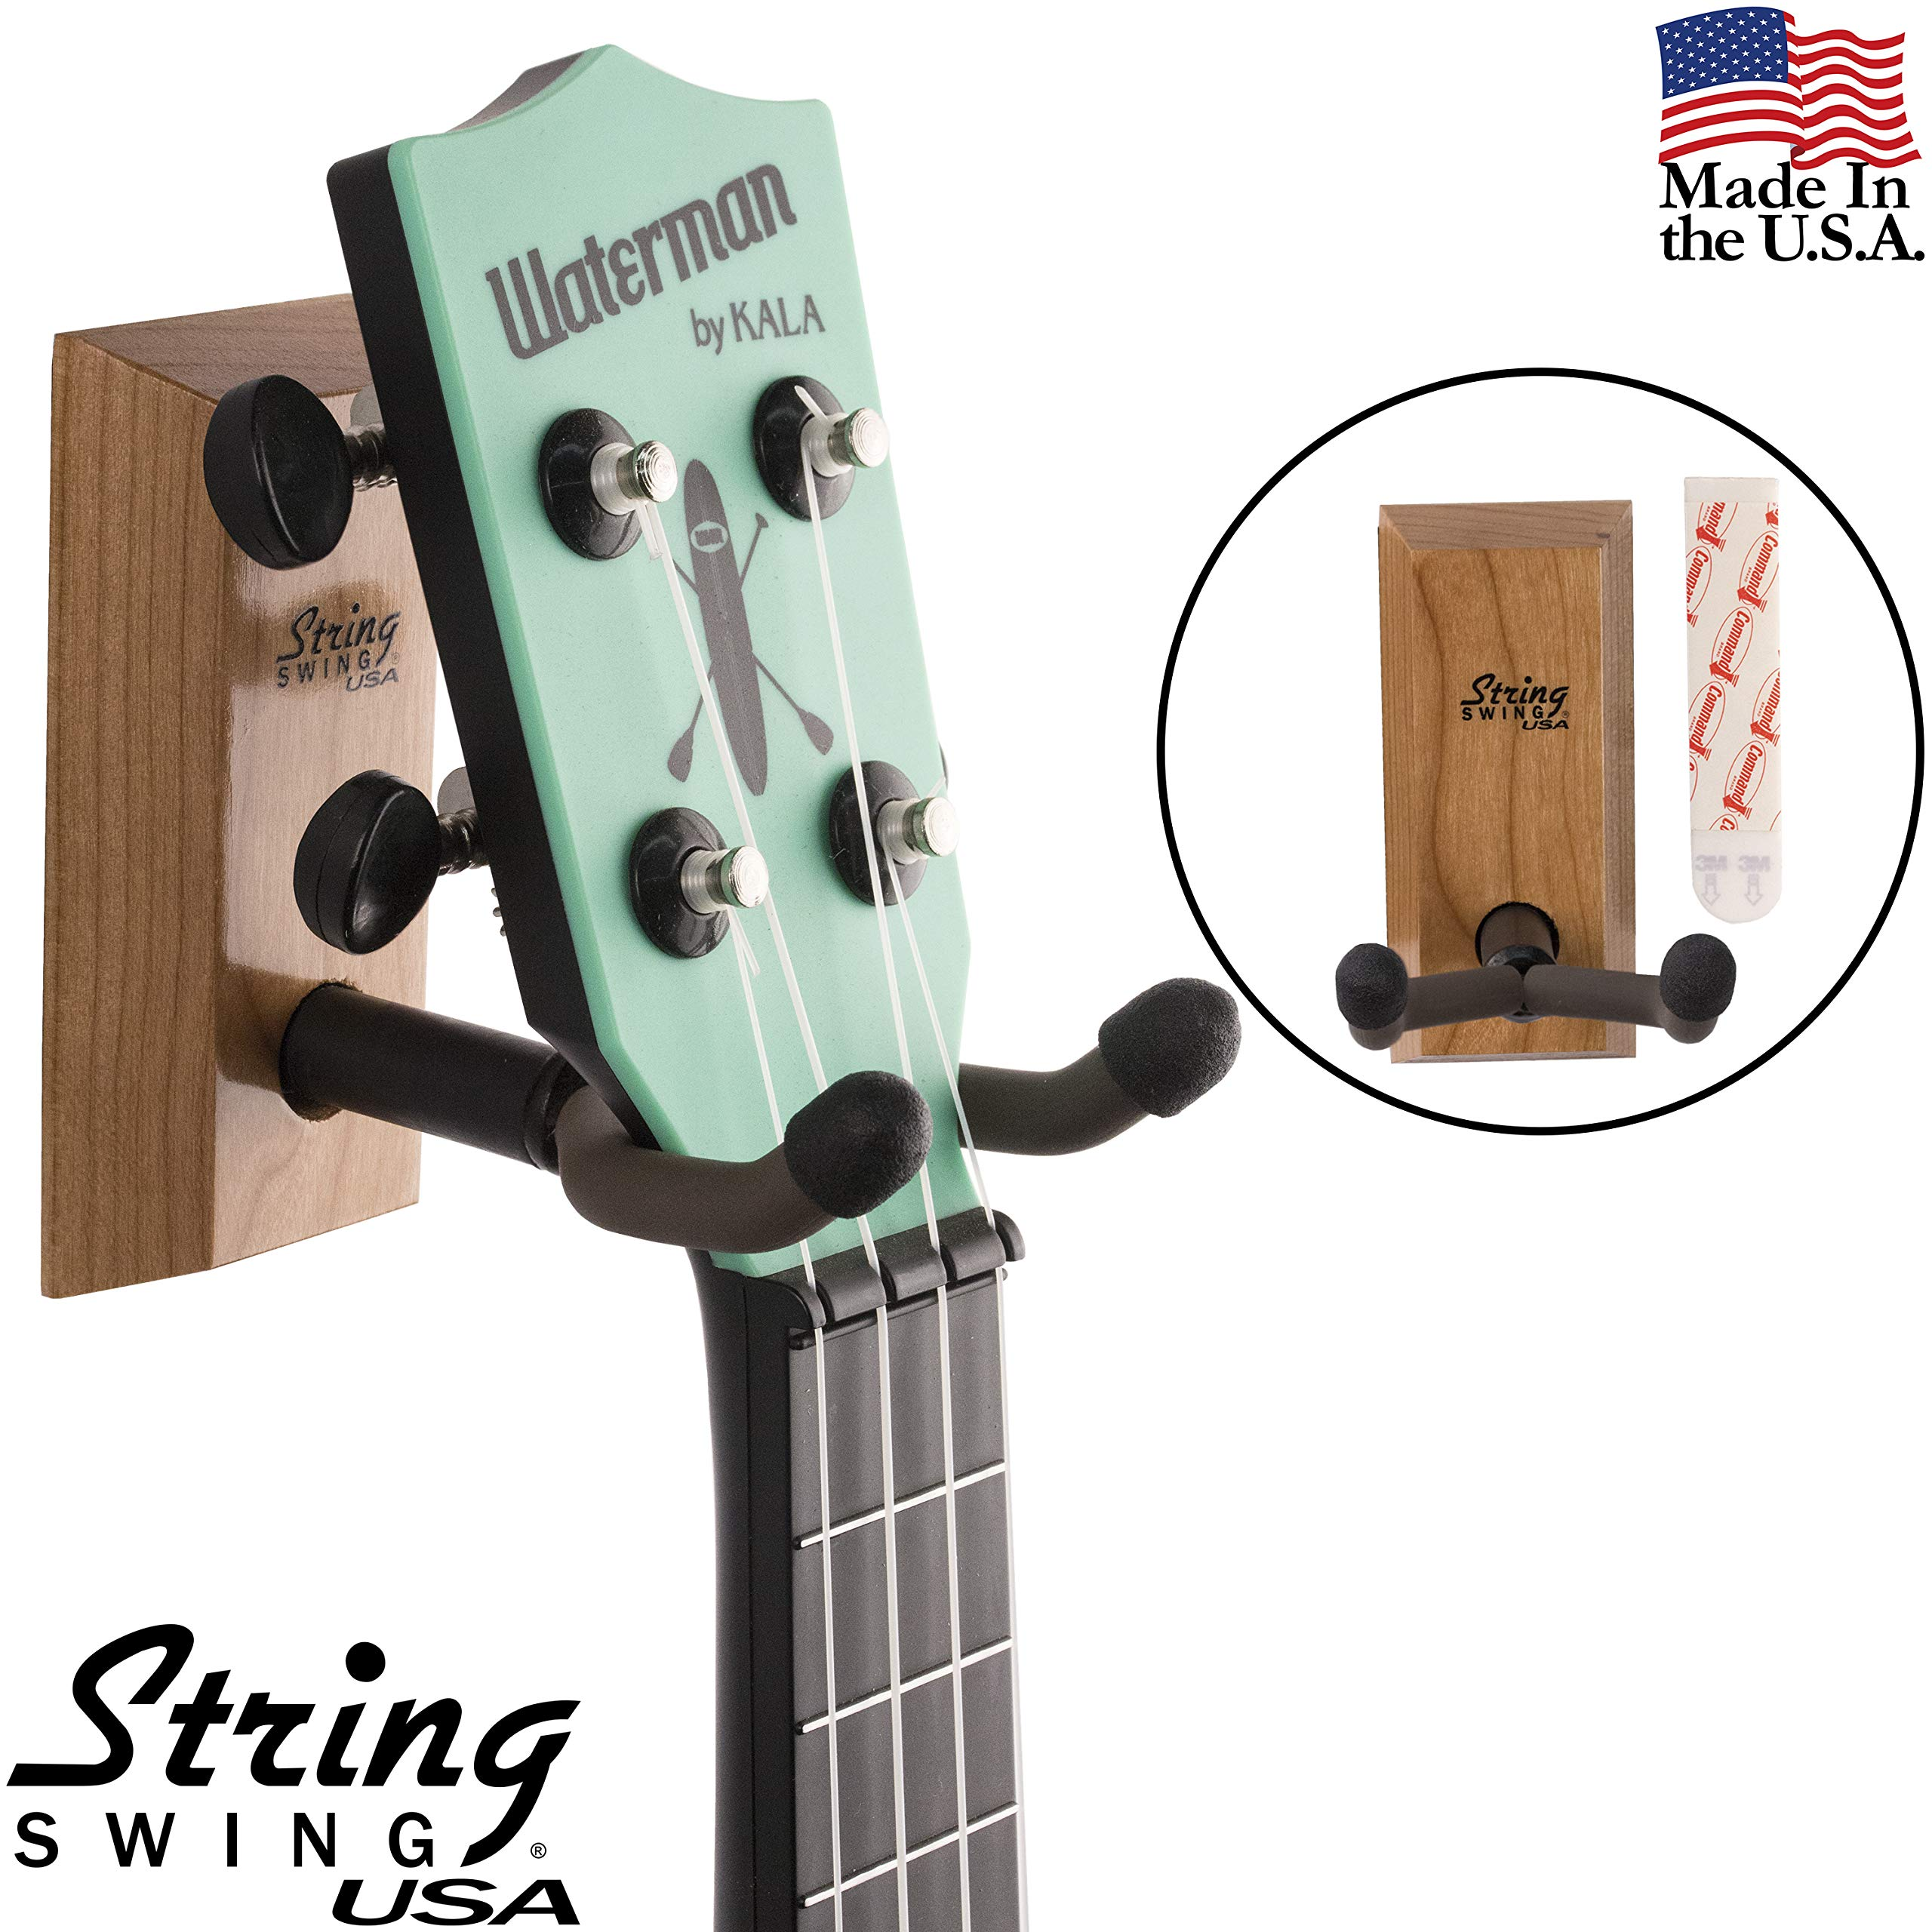 String Swing Ukulele Wall Mount Adhesive Stand for Mandolin Ukele - Concert Pineapple Soprano Tenor and Baritone Compatible - Case Alternative Kit for Home or Studio - Cherry Hardwood CC62UK-C